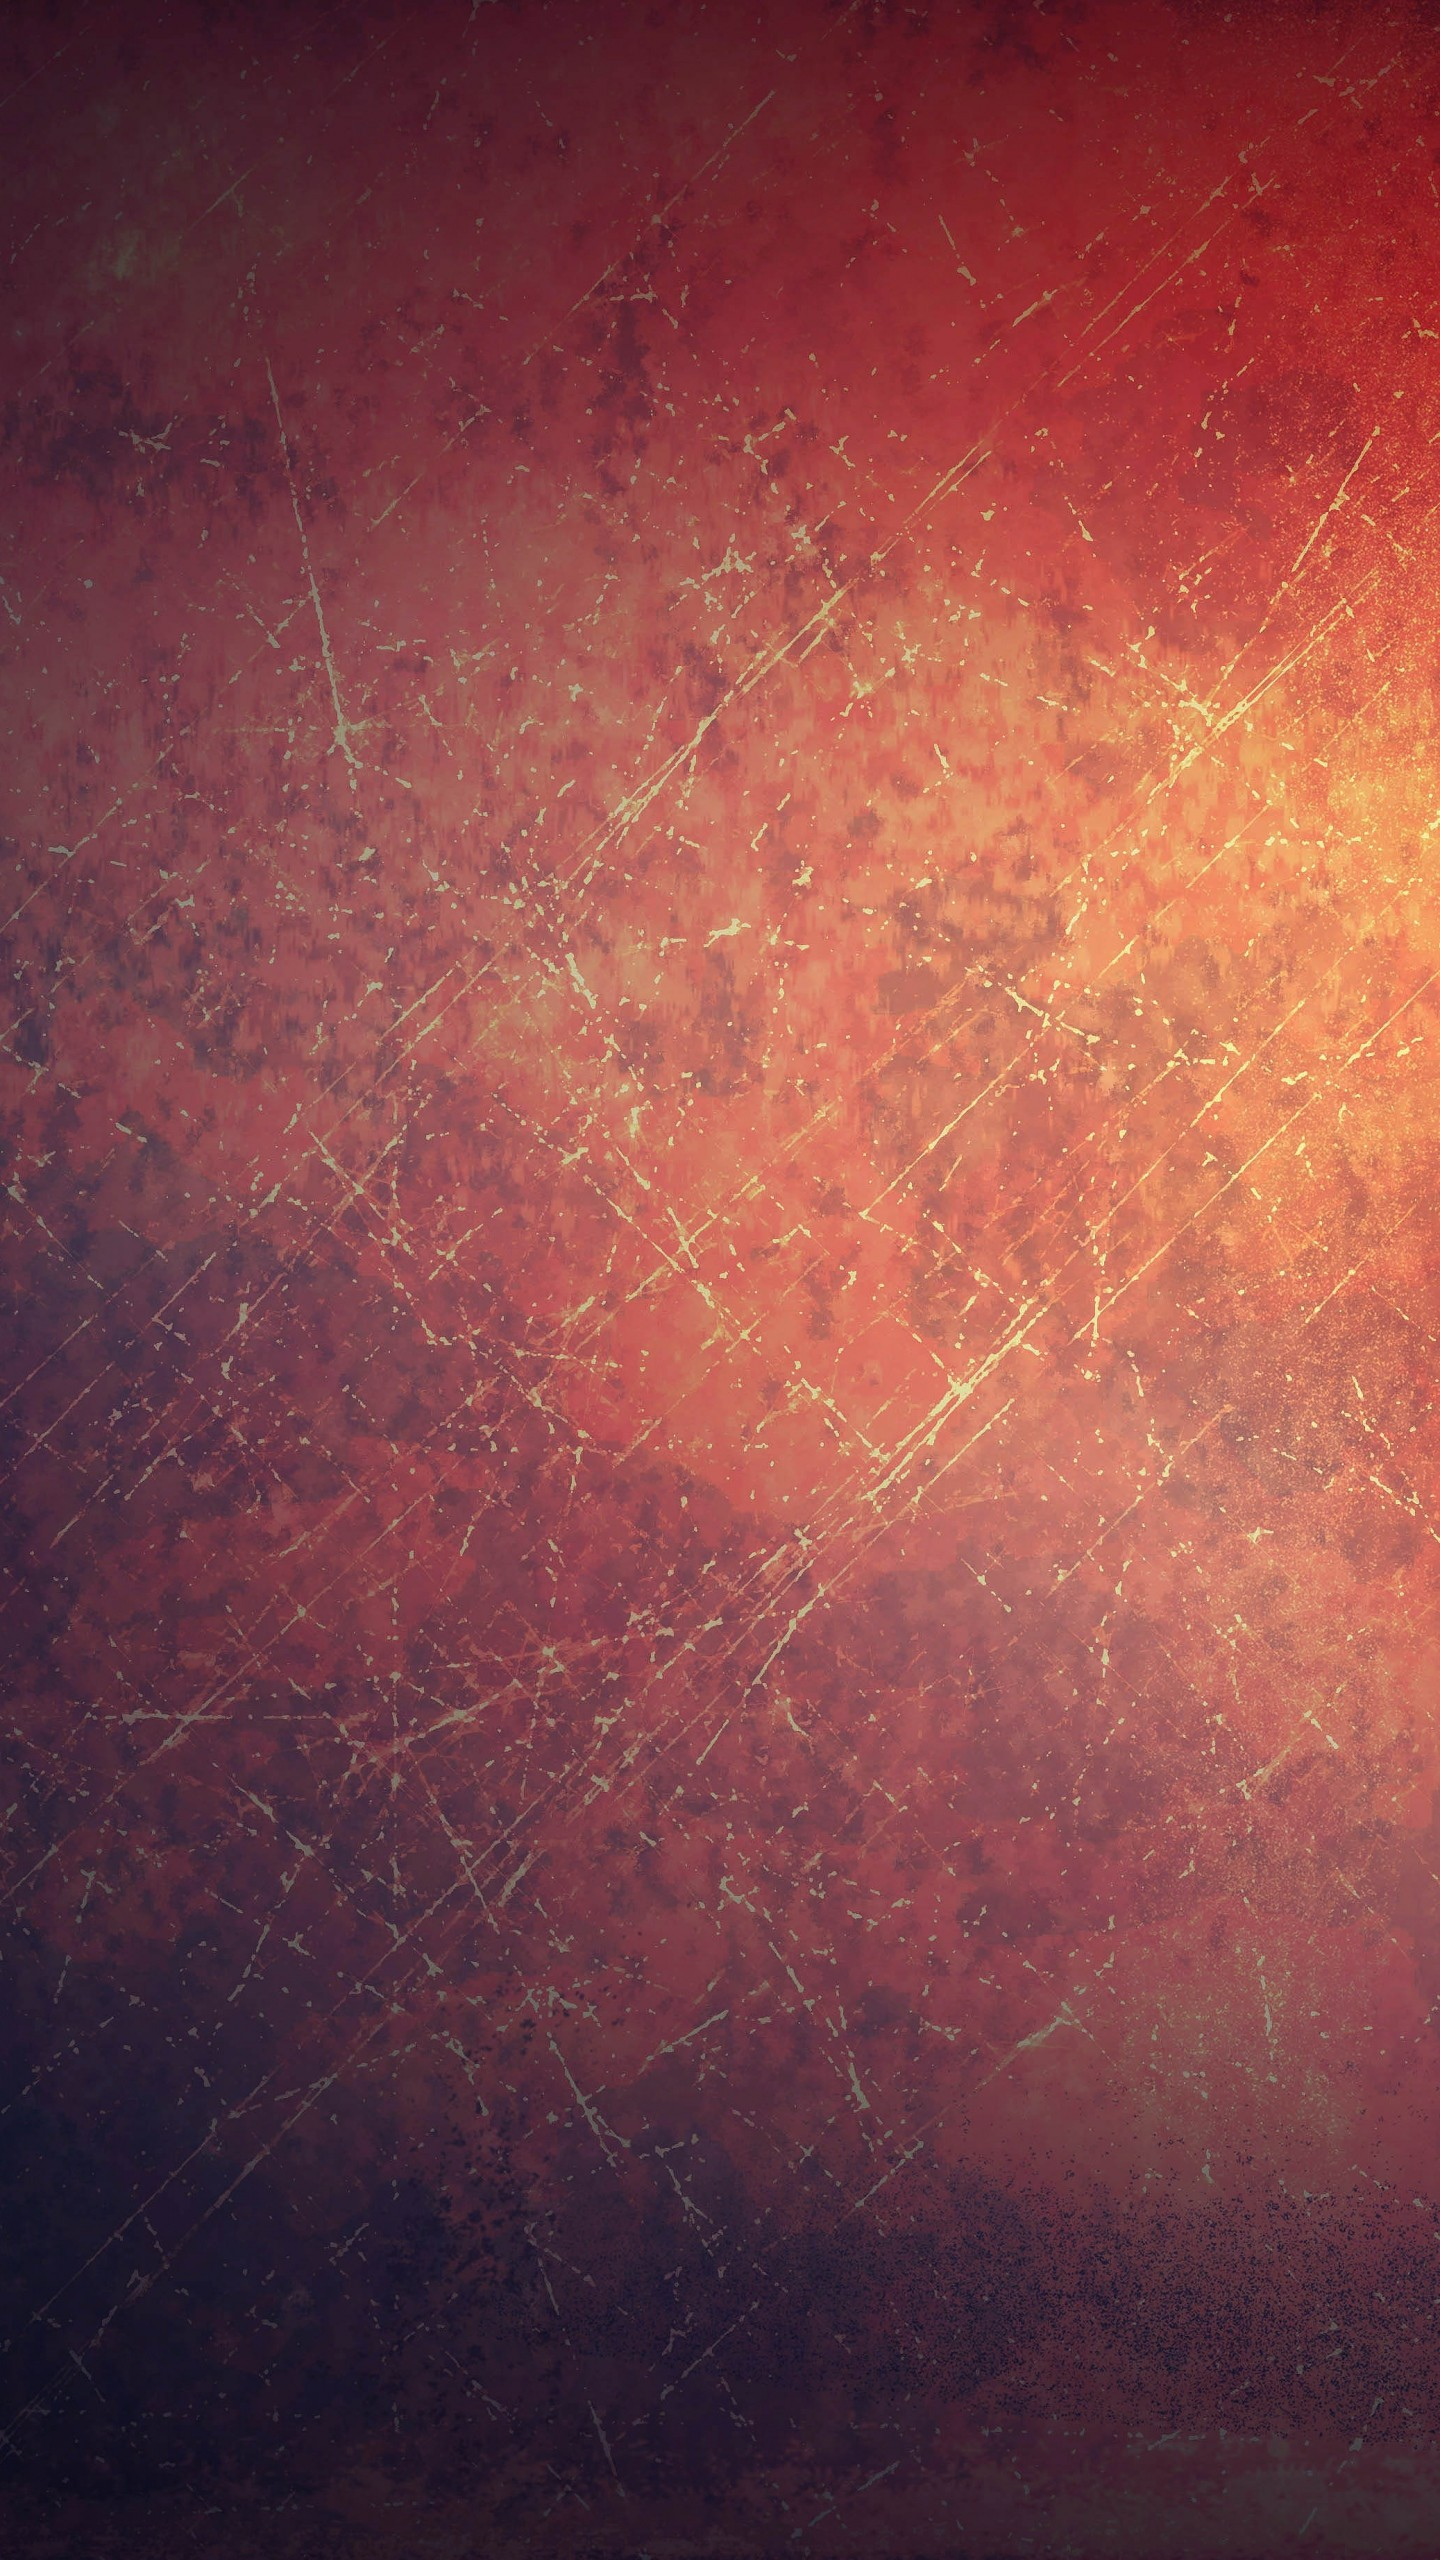 Wallpaper surface, texture, stains, background